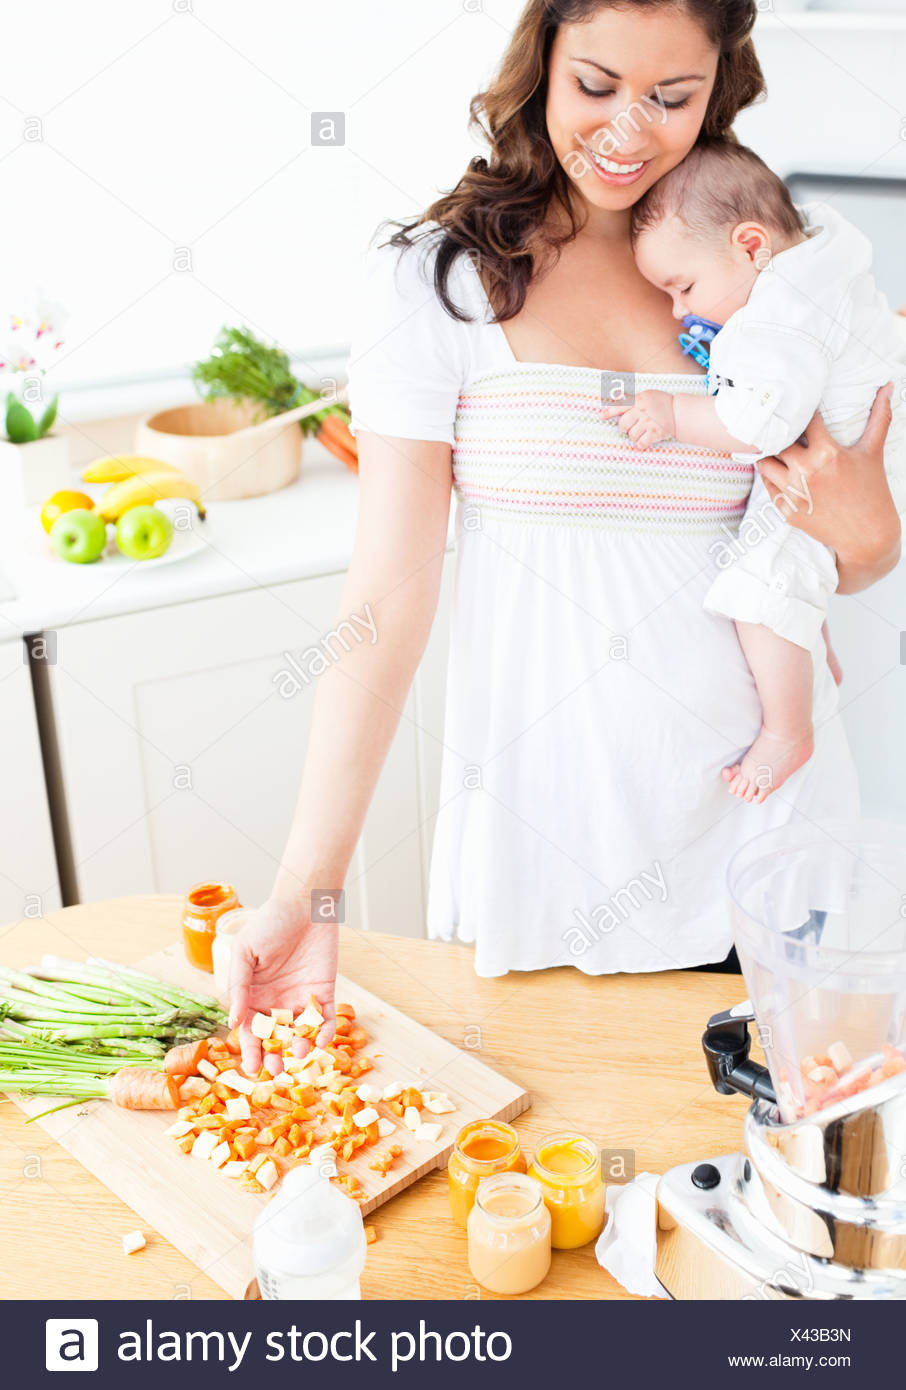 Radiant mother preparing food for her adorable baby in the kitchen - Stock Image